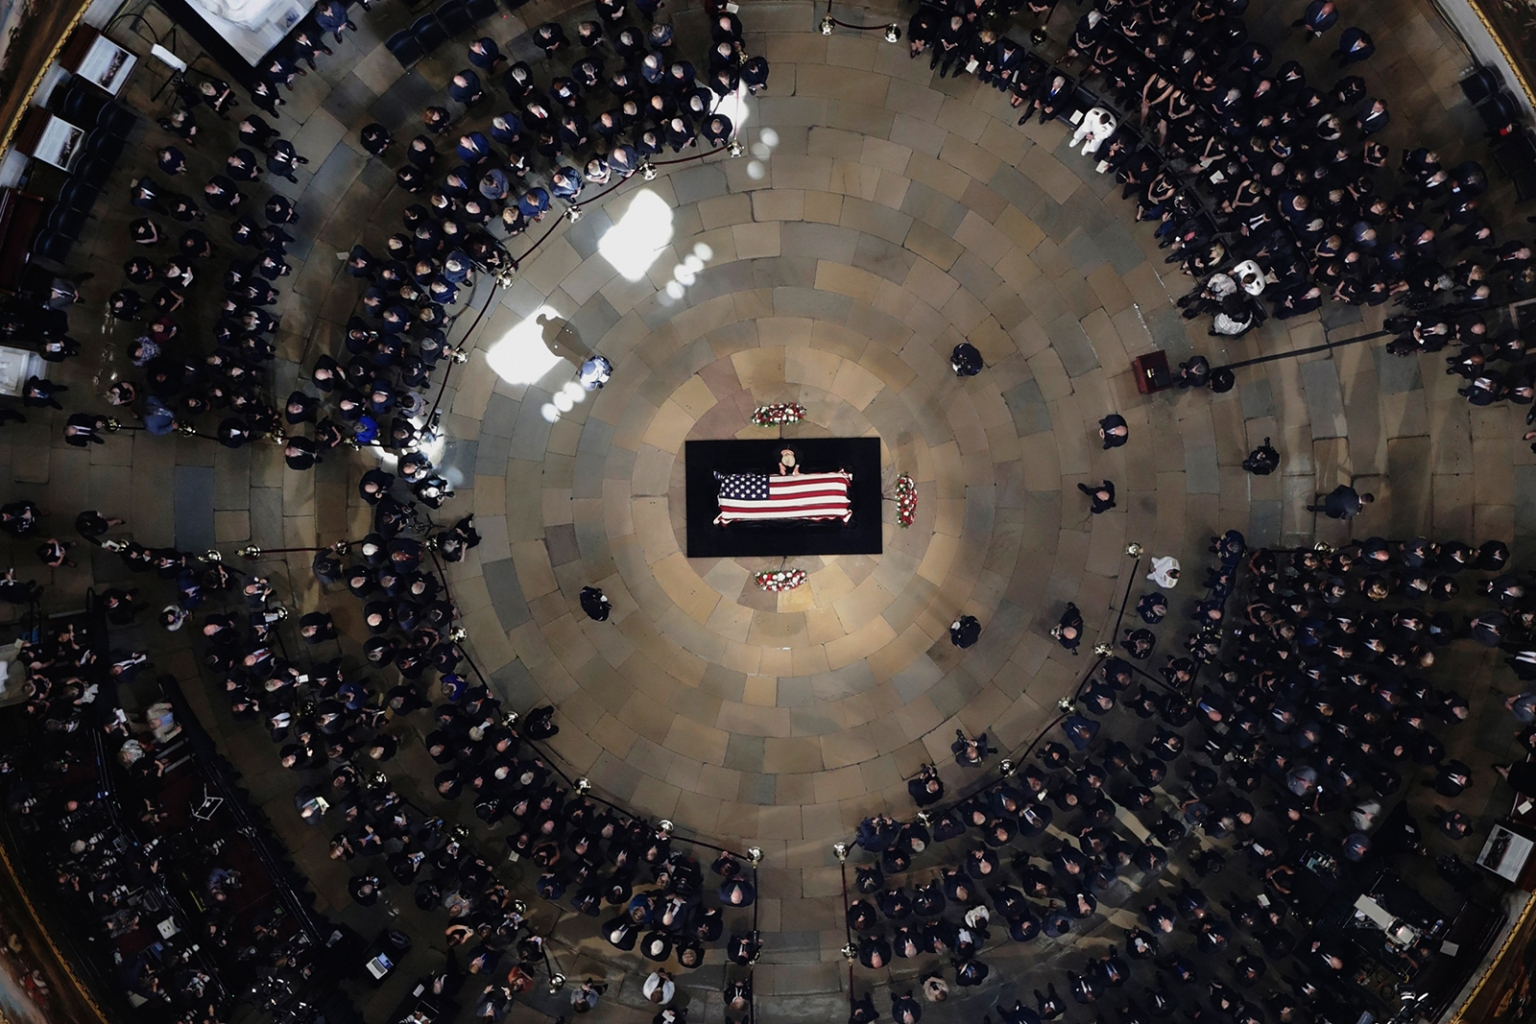 Cindy McCain, wife of the late U.S. Sen. John McCain, stands over his casket as he lies in state in the U.S. Capitol Rotunda in Washington on Aug. 31. MORRY GASH/AFP/Getty Images